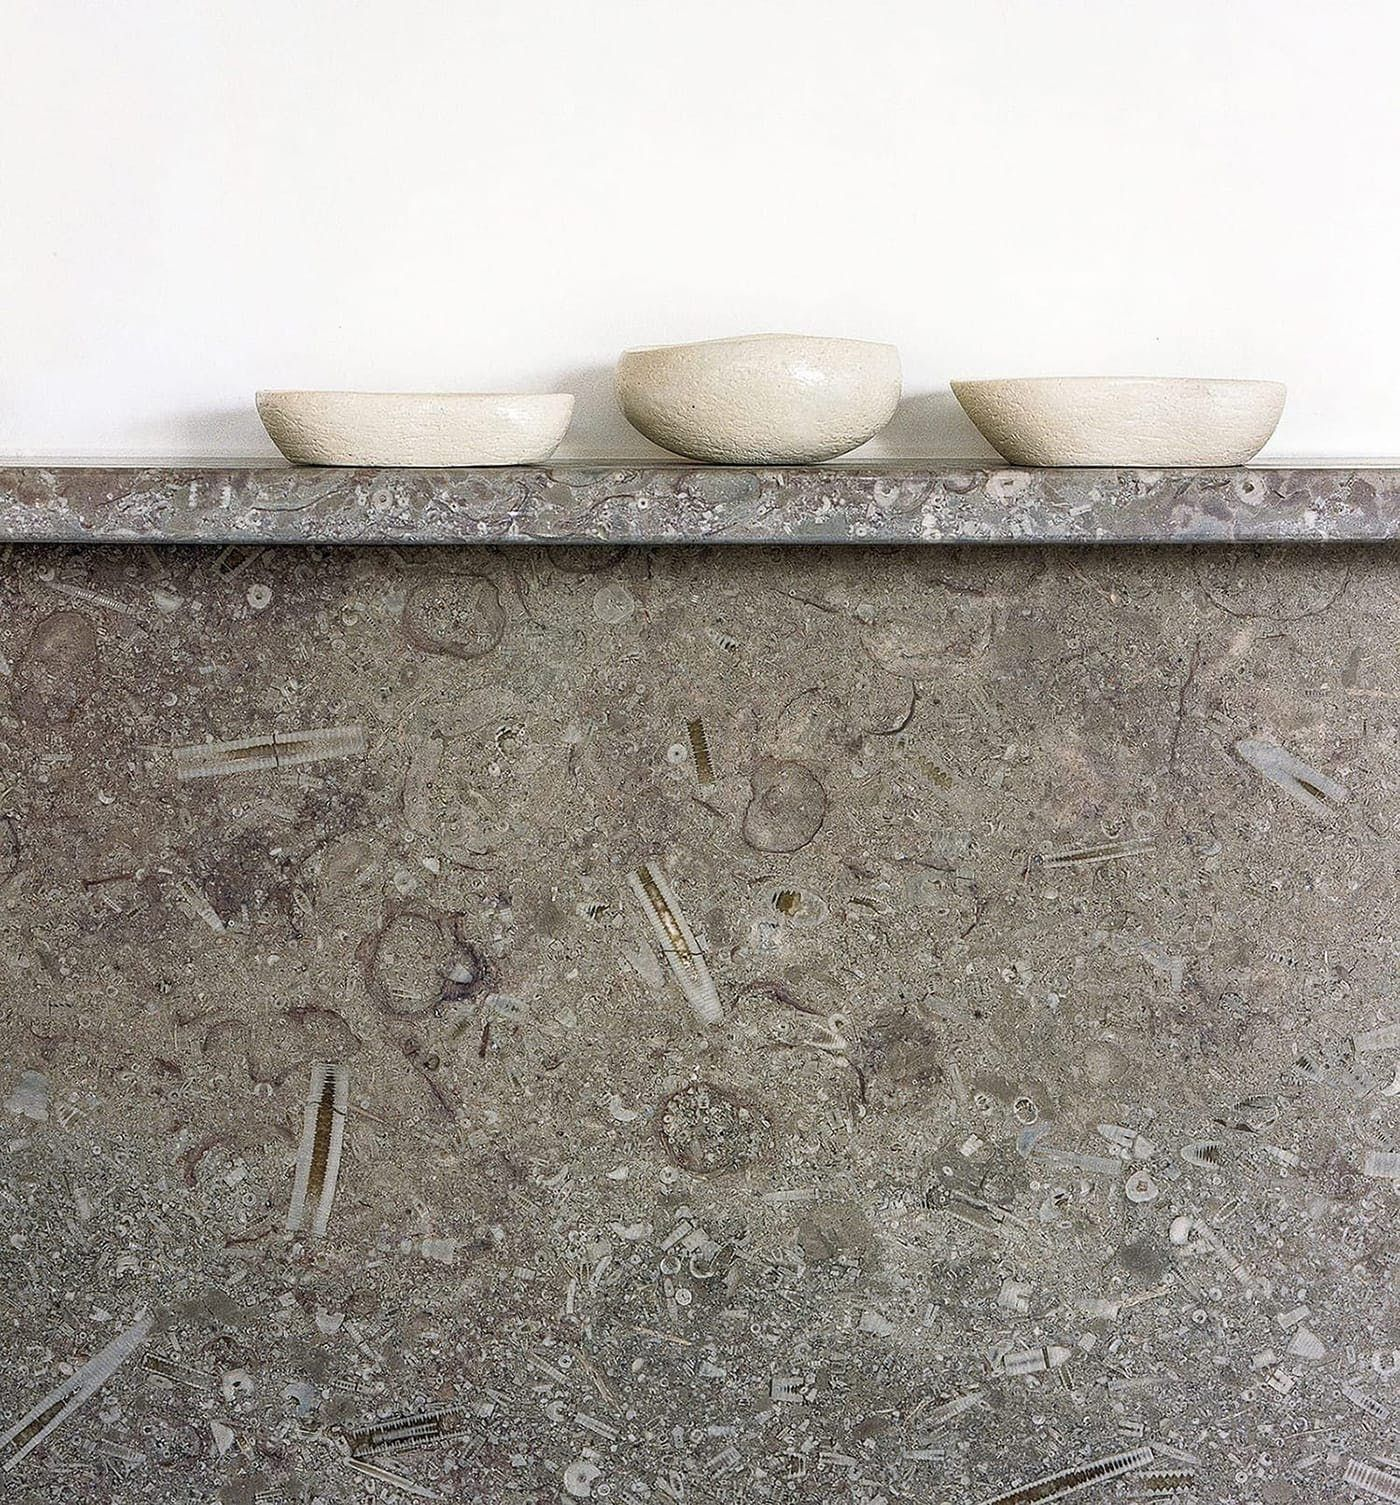 Mandale fossil limestone splash back and display shelf within From Works bespoke kitchen at Southgrove Road in Sheffield.